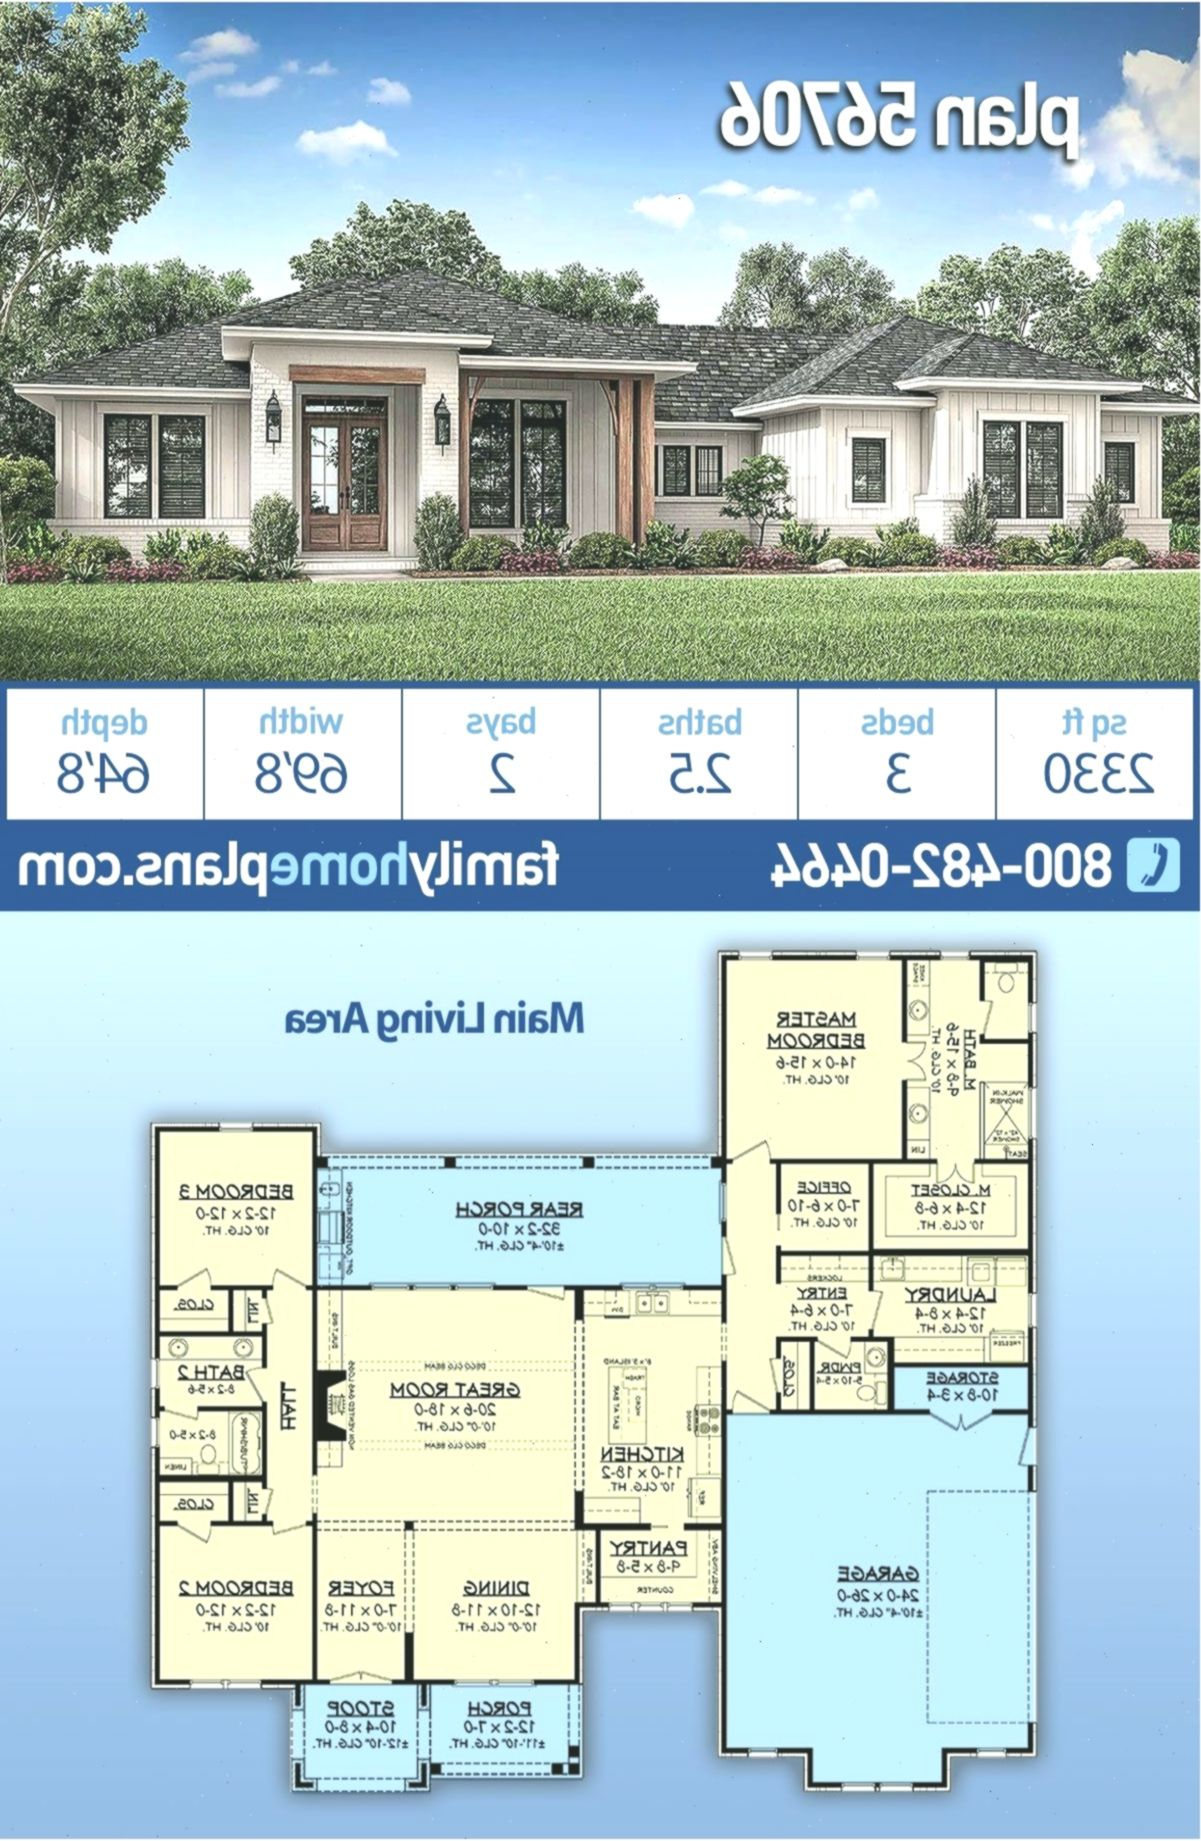 Modern Texas Ranch House Plan #56706 has 2330 sq ft, 3 ...